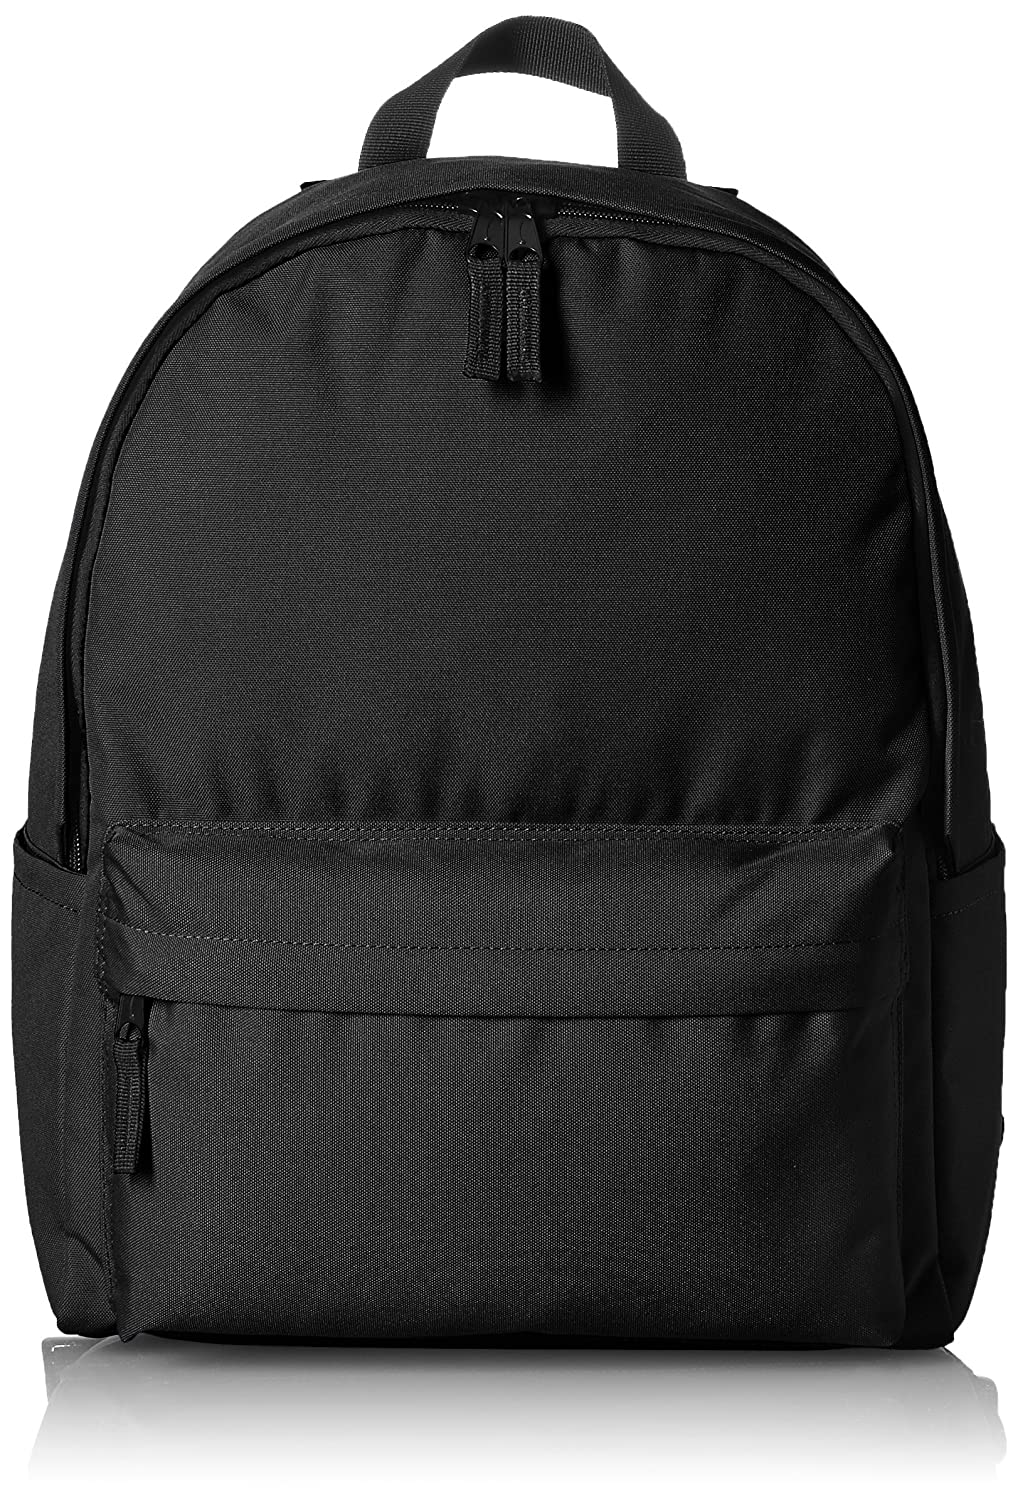 dc010267365 9 Best Backpacks For High School & College of 2019 | ReviewLab